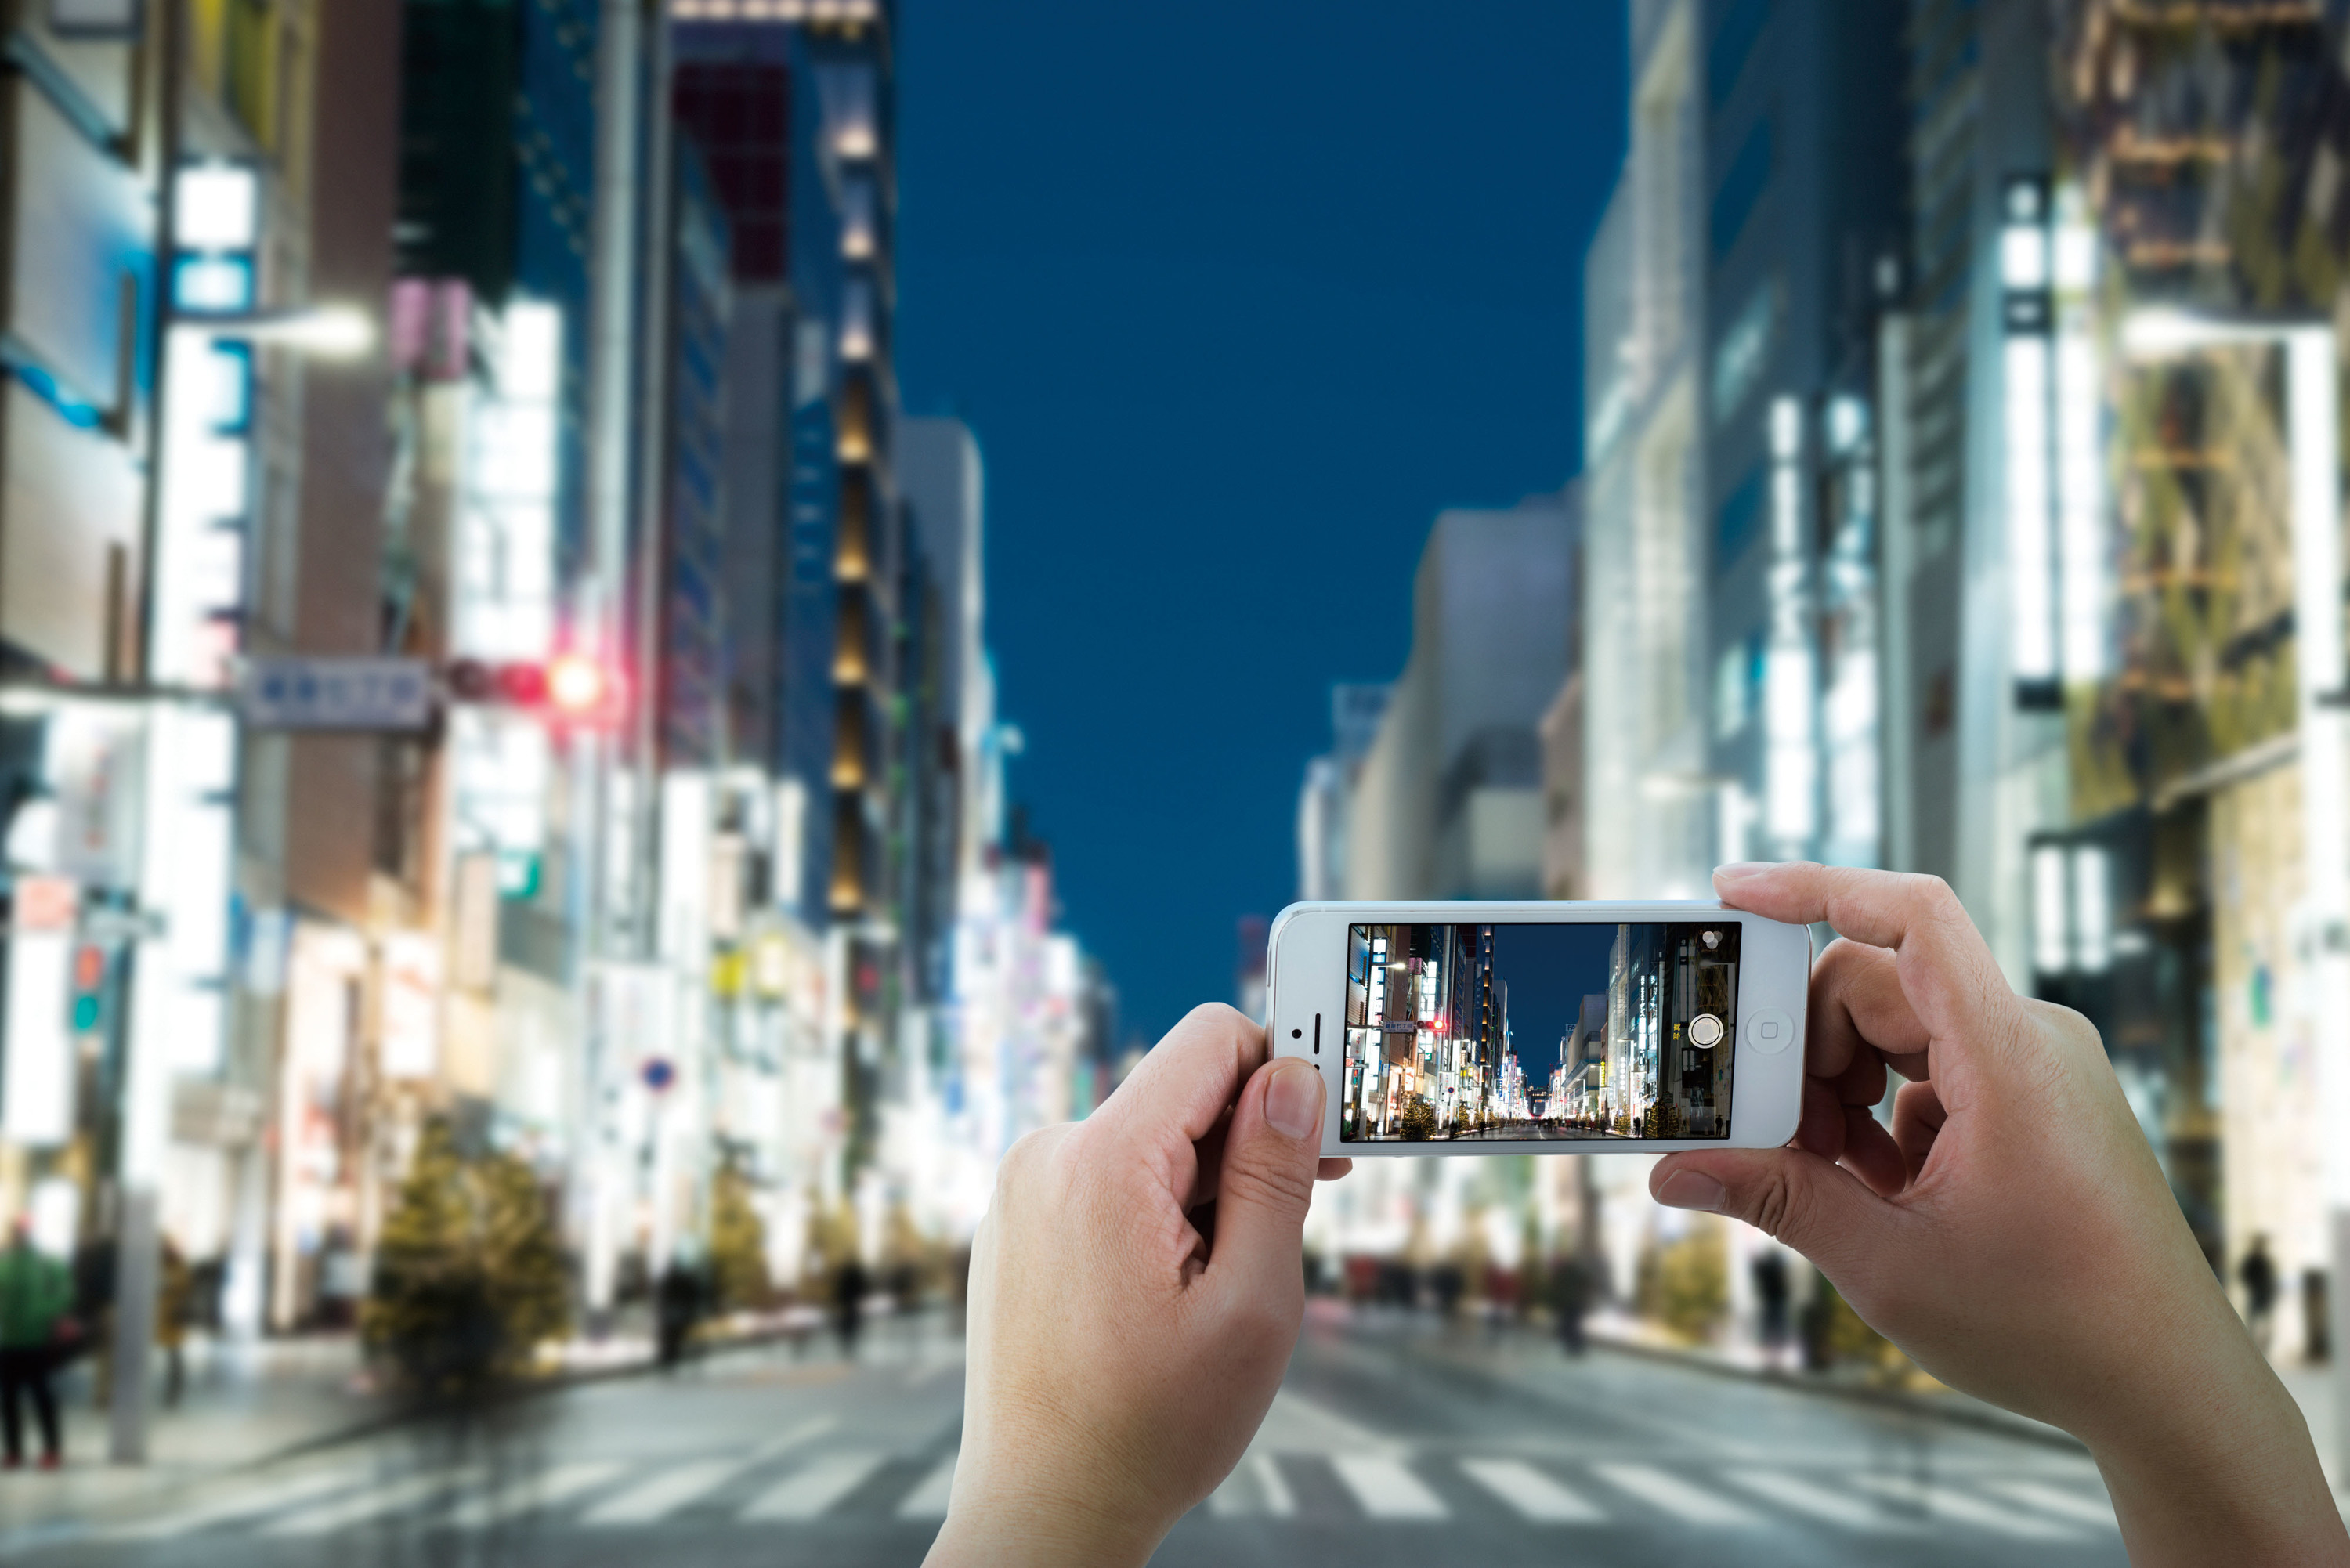 Where to find free wi-fi in Tokyo